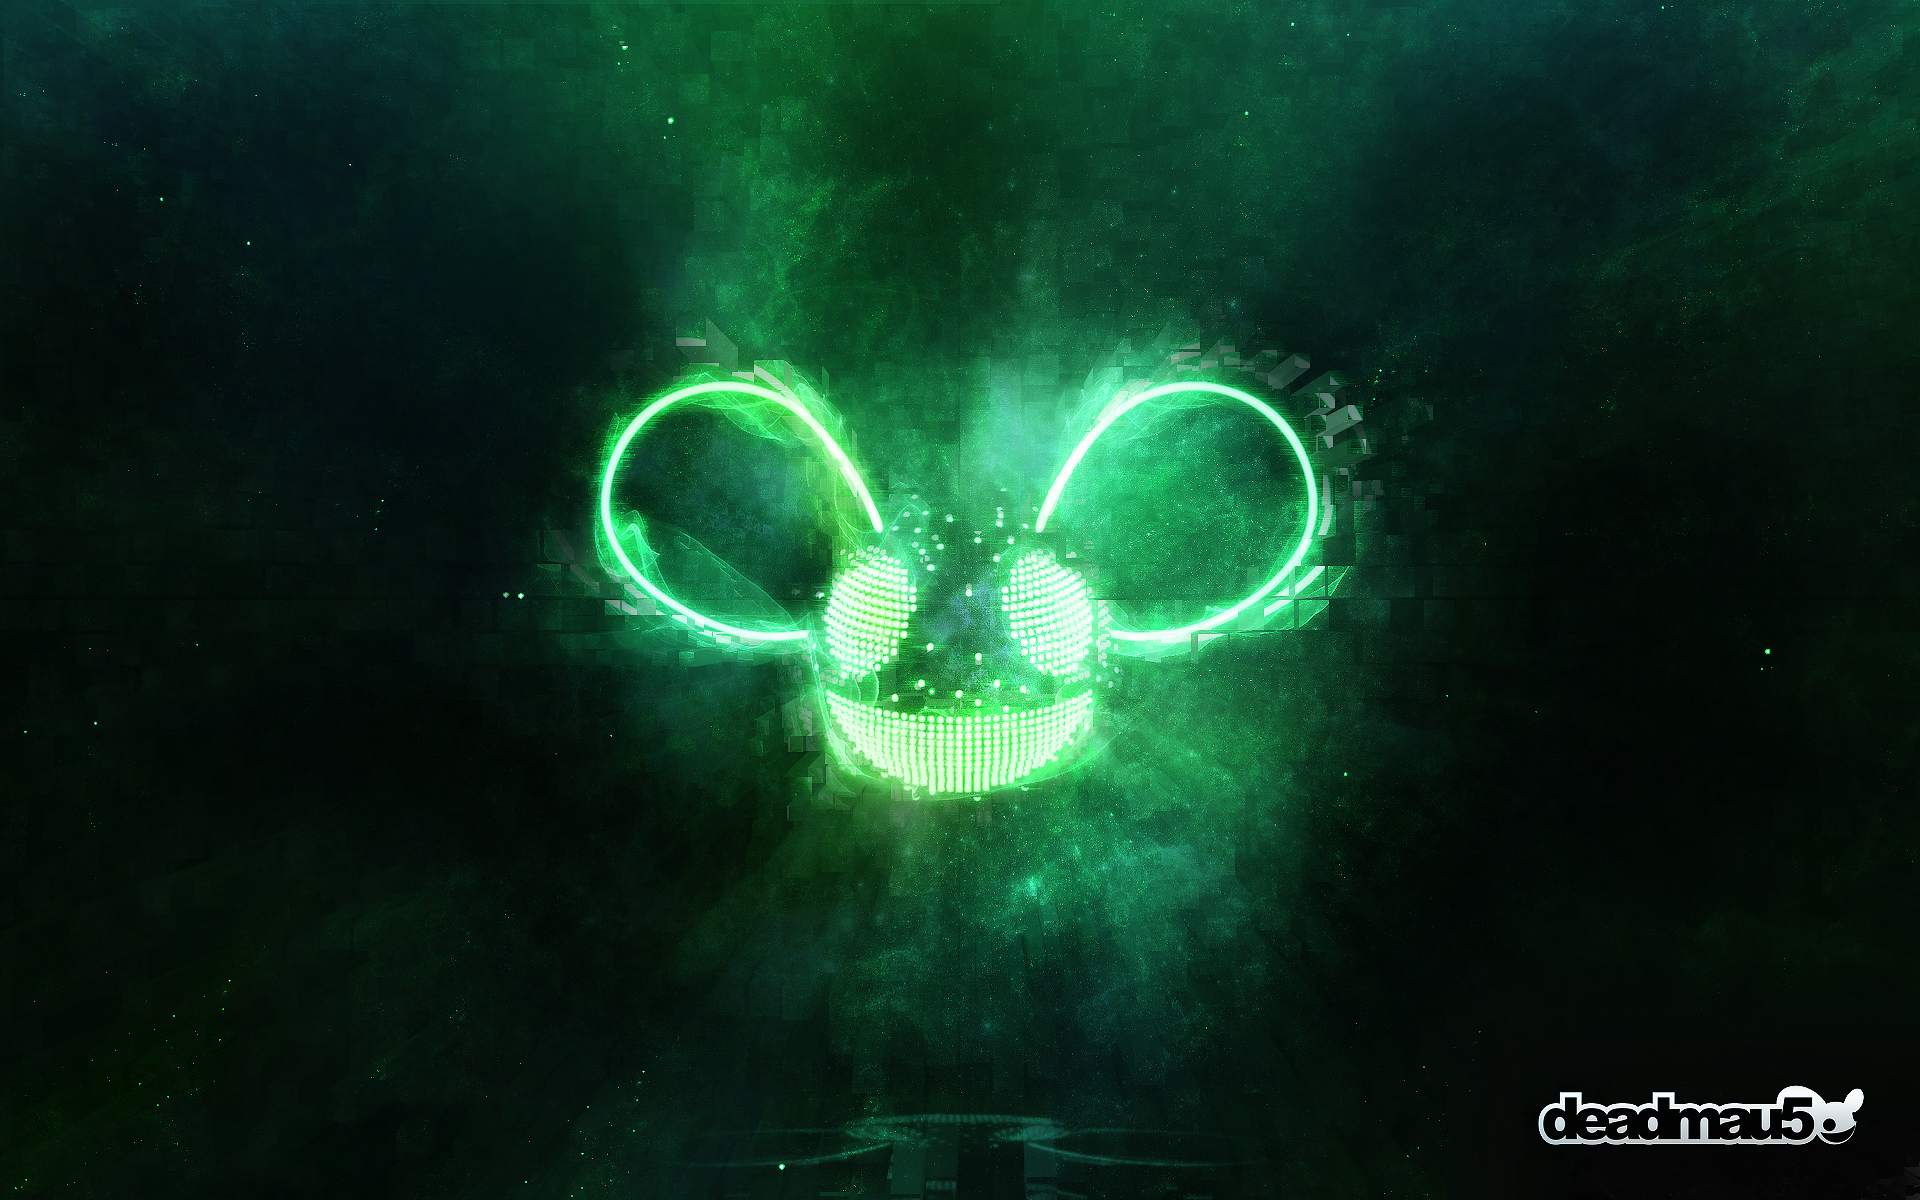 370 Wallpapers Para Iphone: Deadmau5 Fondo De Pantalla HD